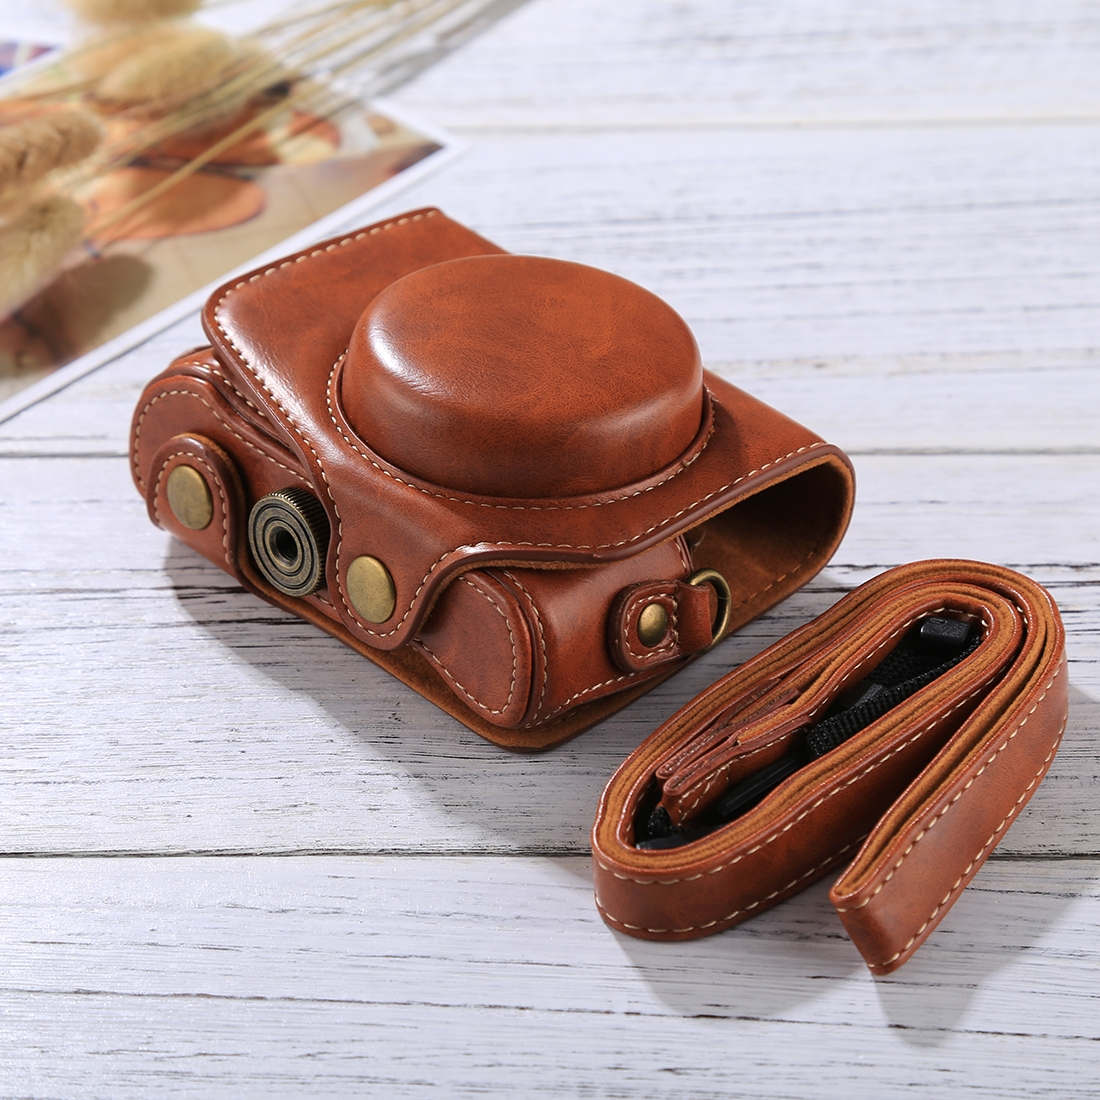 Full Body Camera PU Leather Camera Case Bag with Strap for Canon PowerShot G7 X Mark II (Brown)